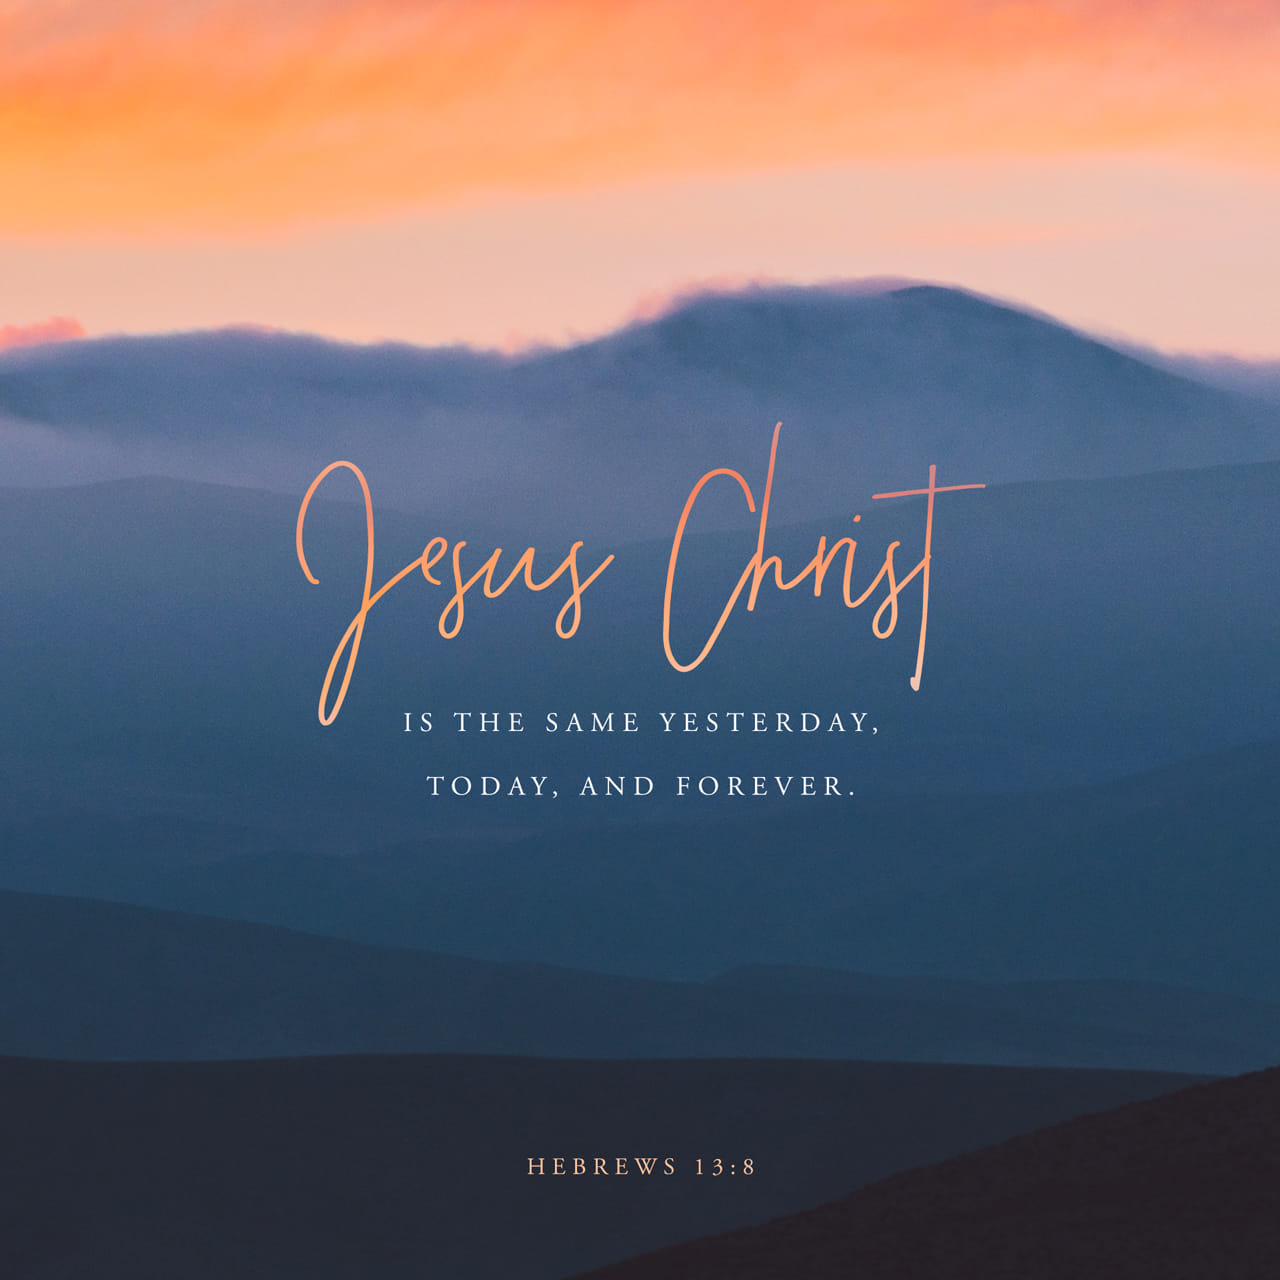 Hebrews 13:8 Jesus Christ is the same yesterday and to-day, yea and for ever. | American Standard Version (ASV)